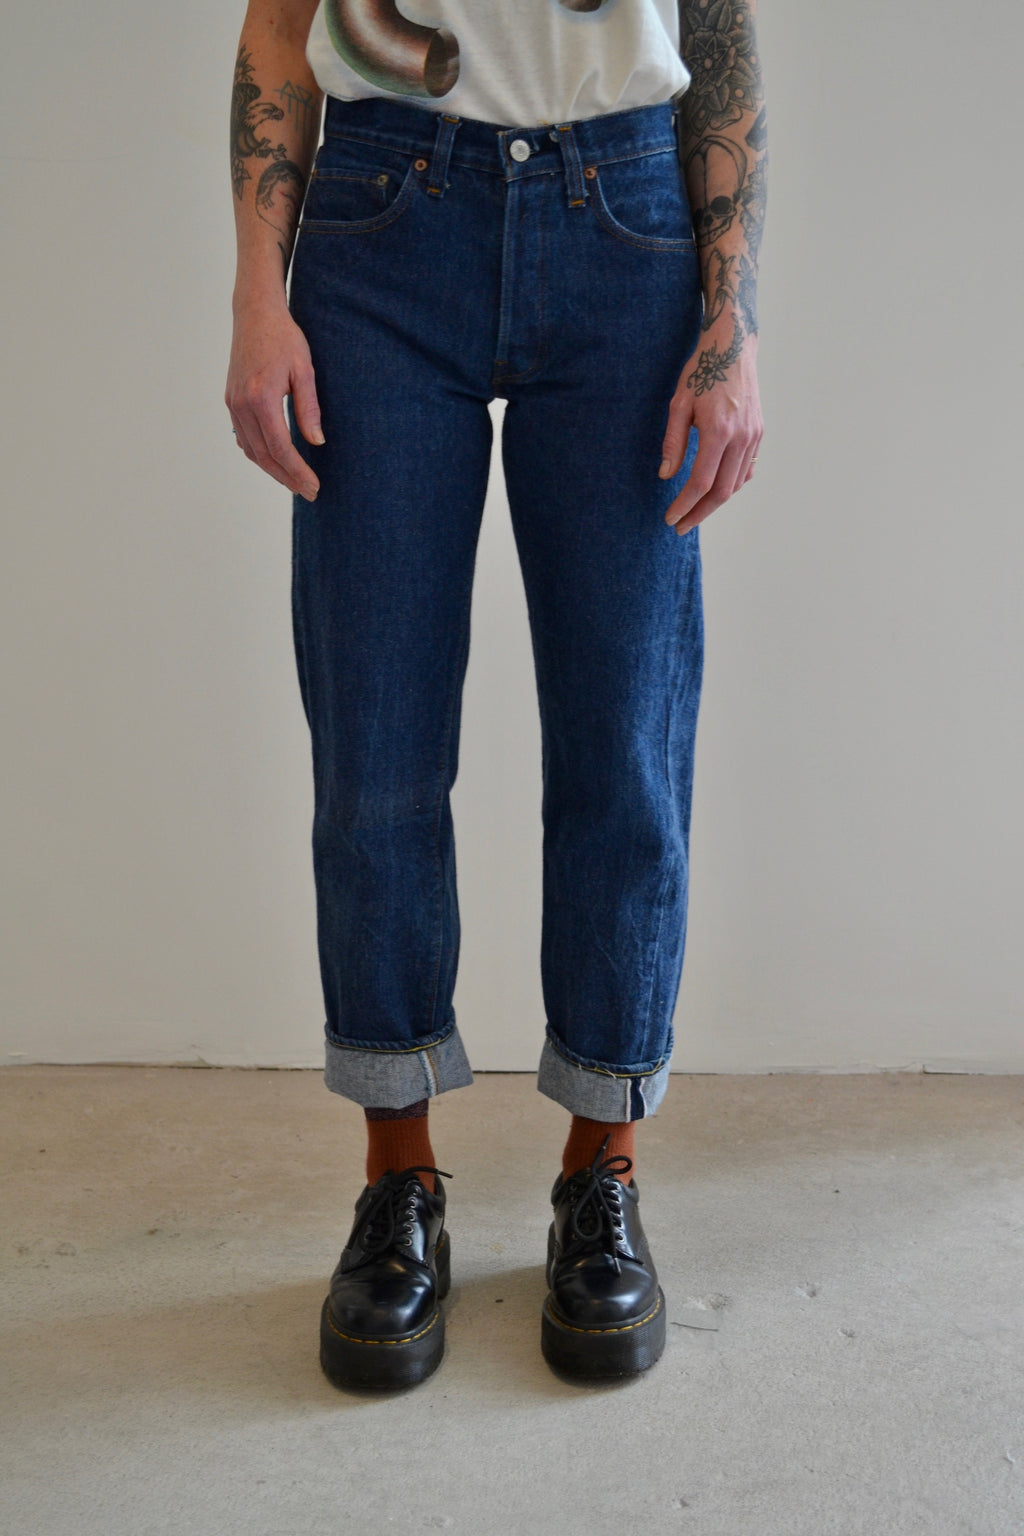 1980's Levis 501 Dark Wash Denim Selvedge Jeans